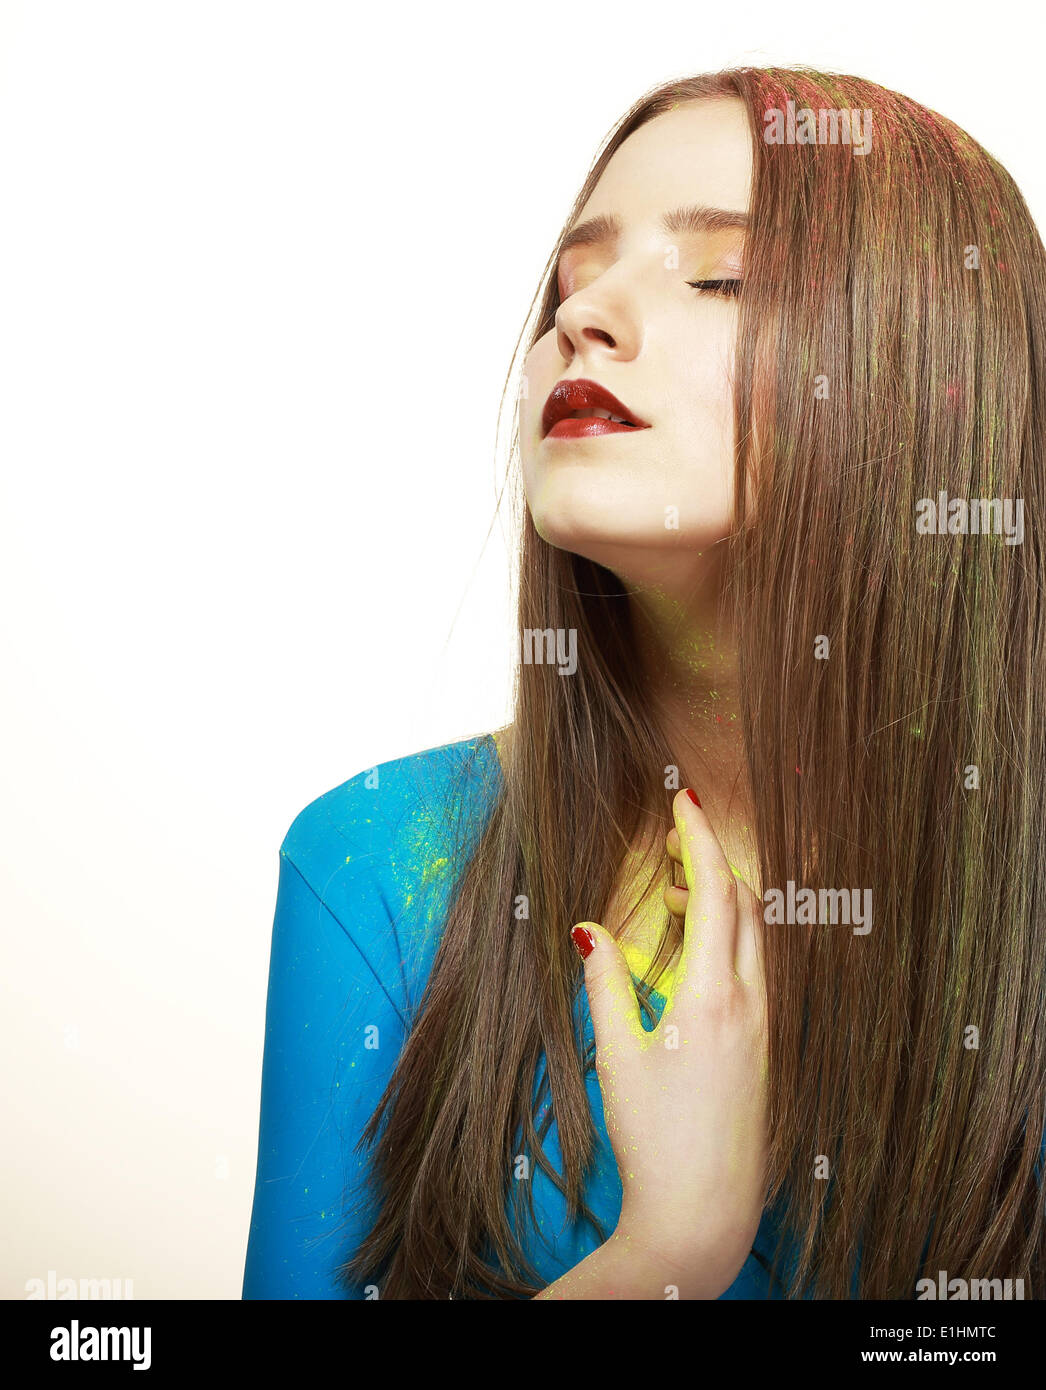 Imagination. Young Fashion Model with Bright Colorful Makeup. Glamor - Stock Image